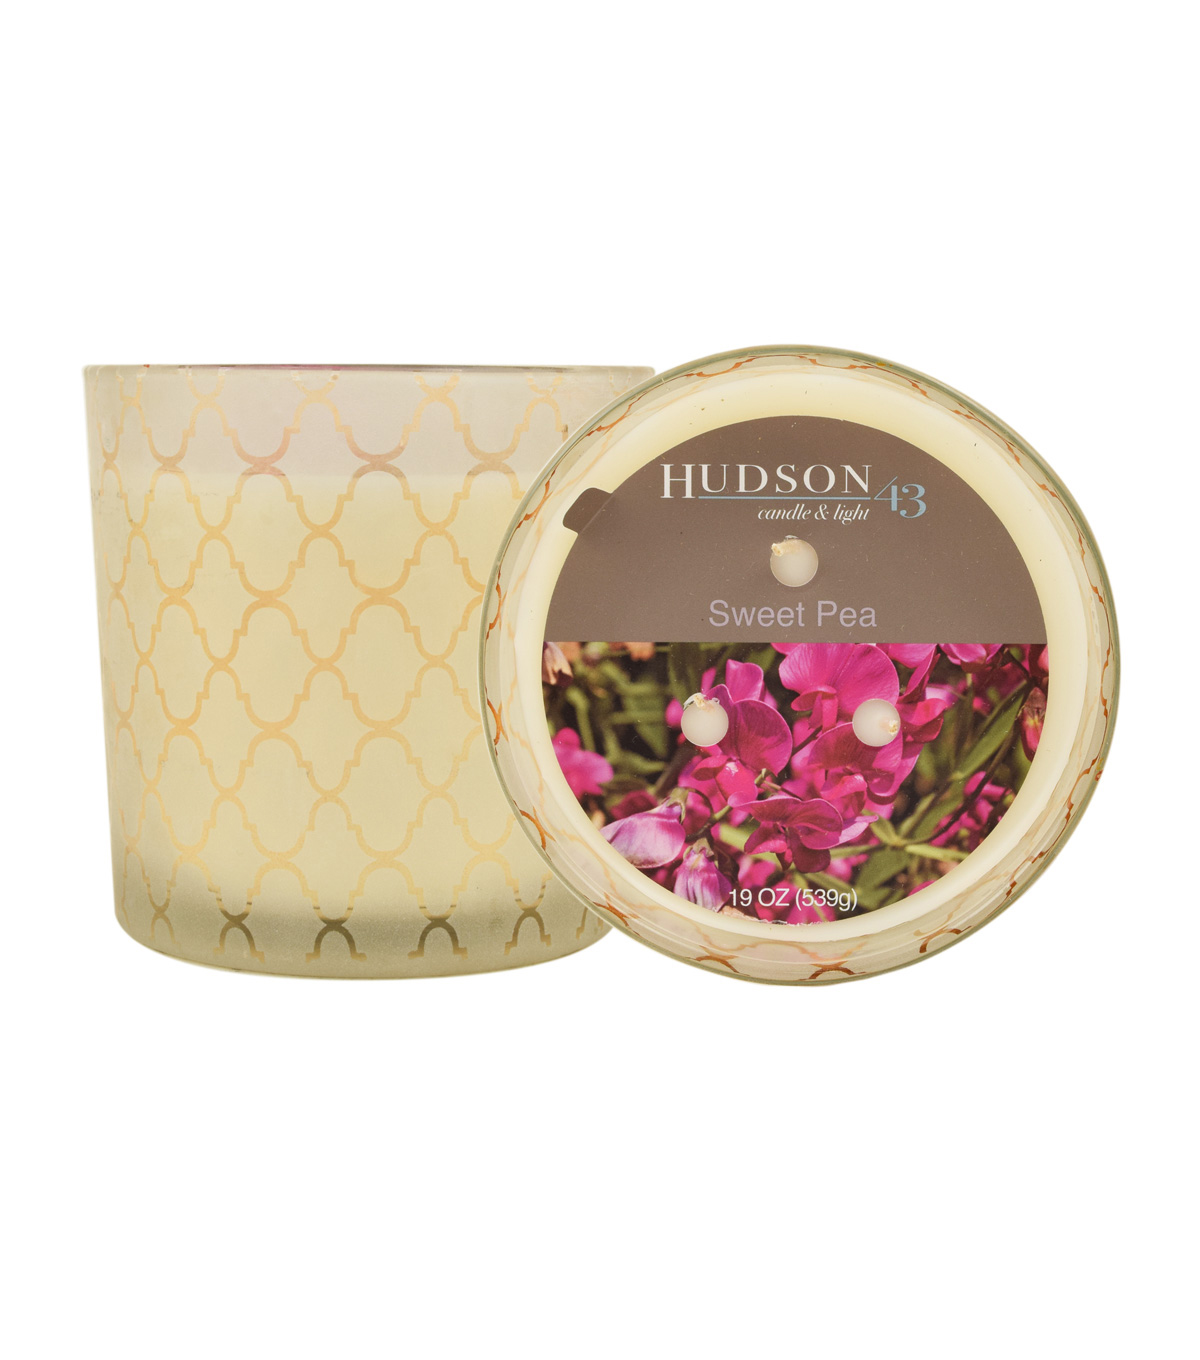 Hudson 43™ Candle & Light Collection 19oz Patterned Jar Sweet Pea